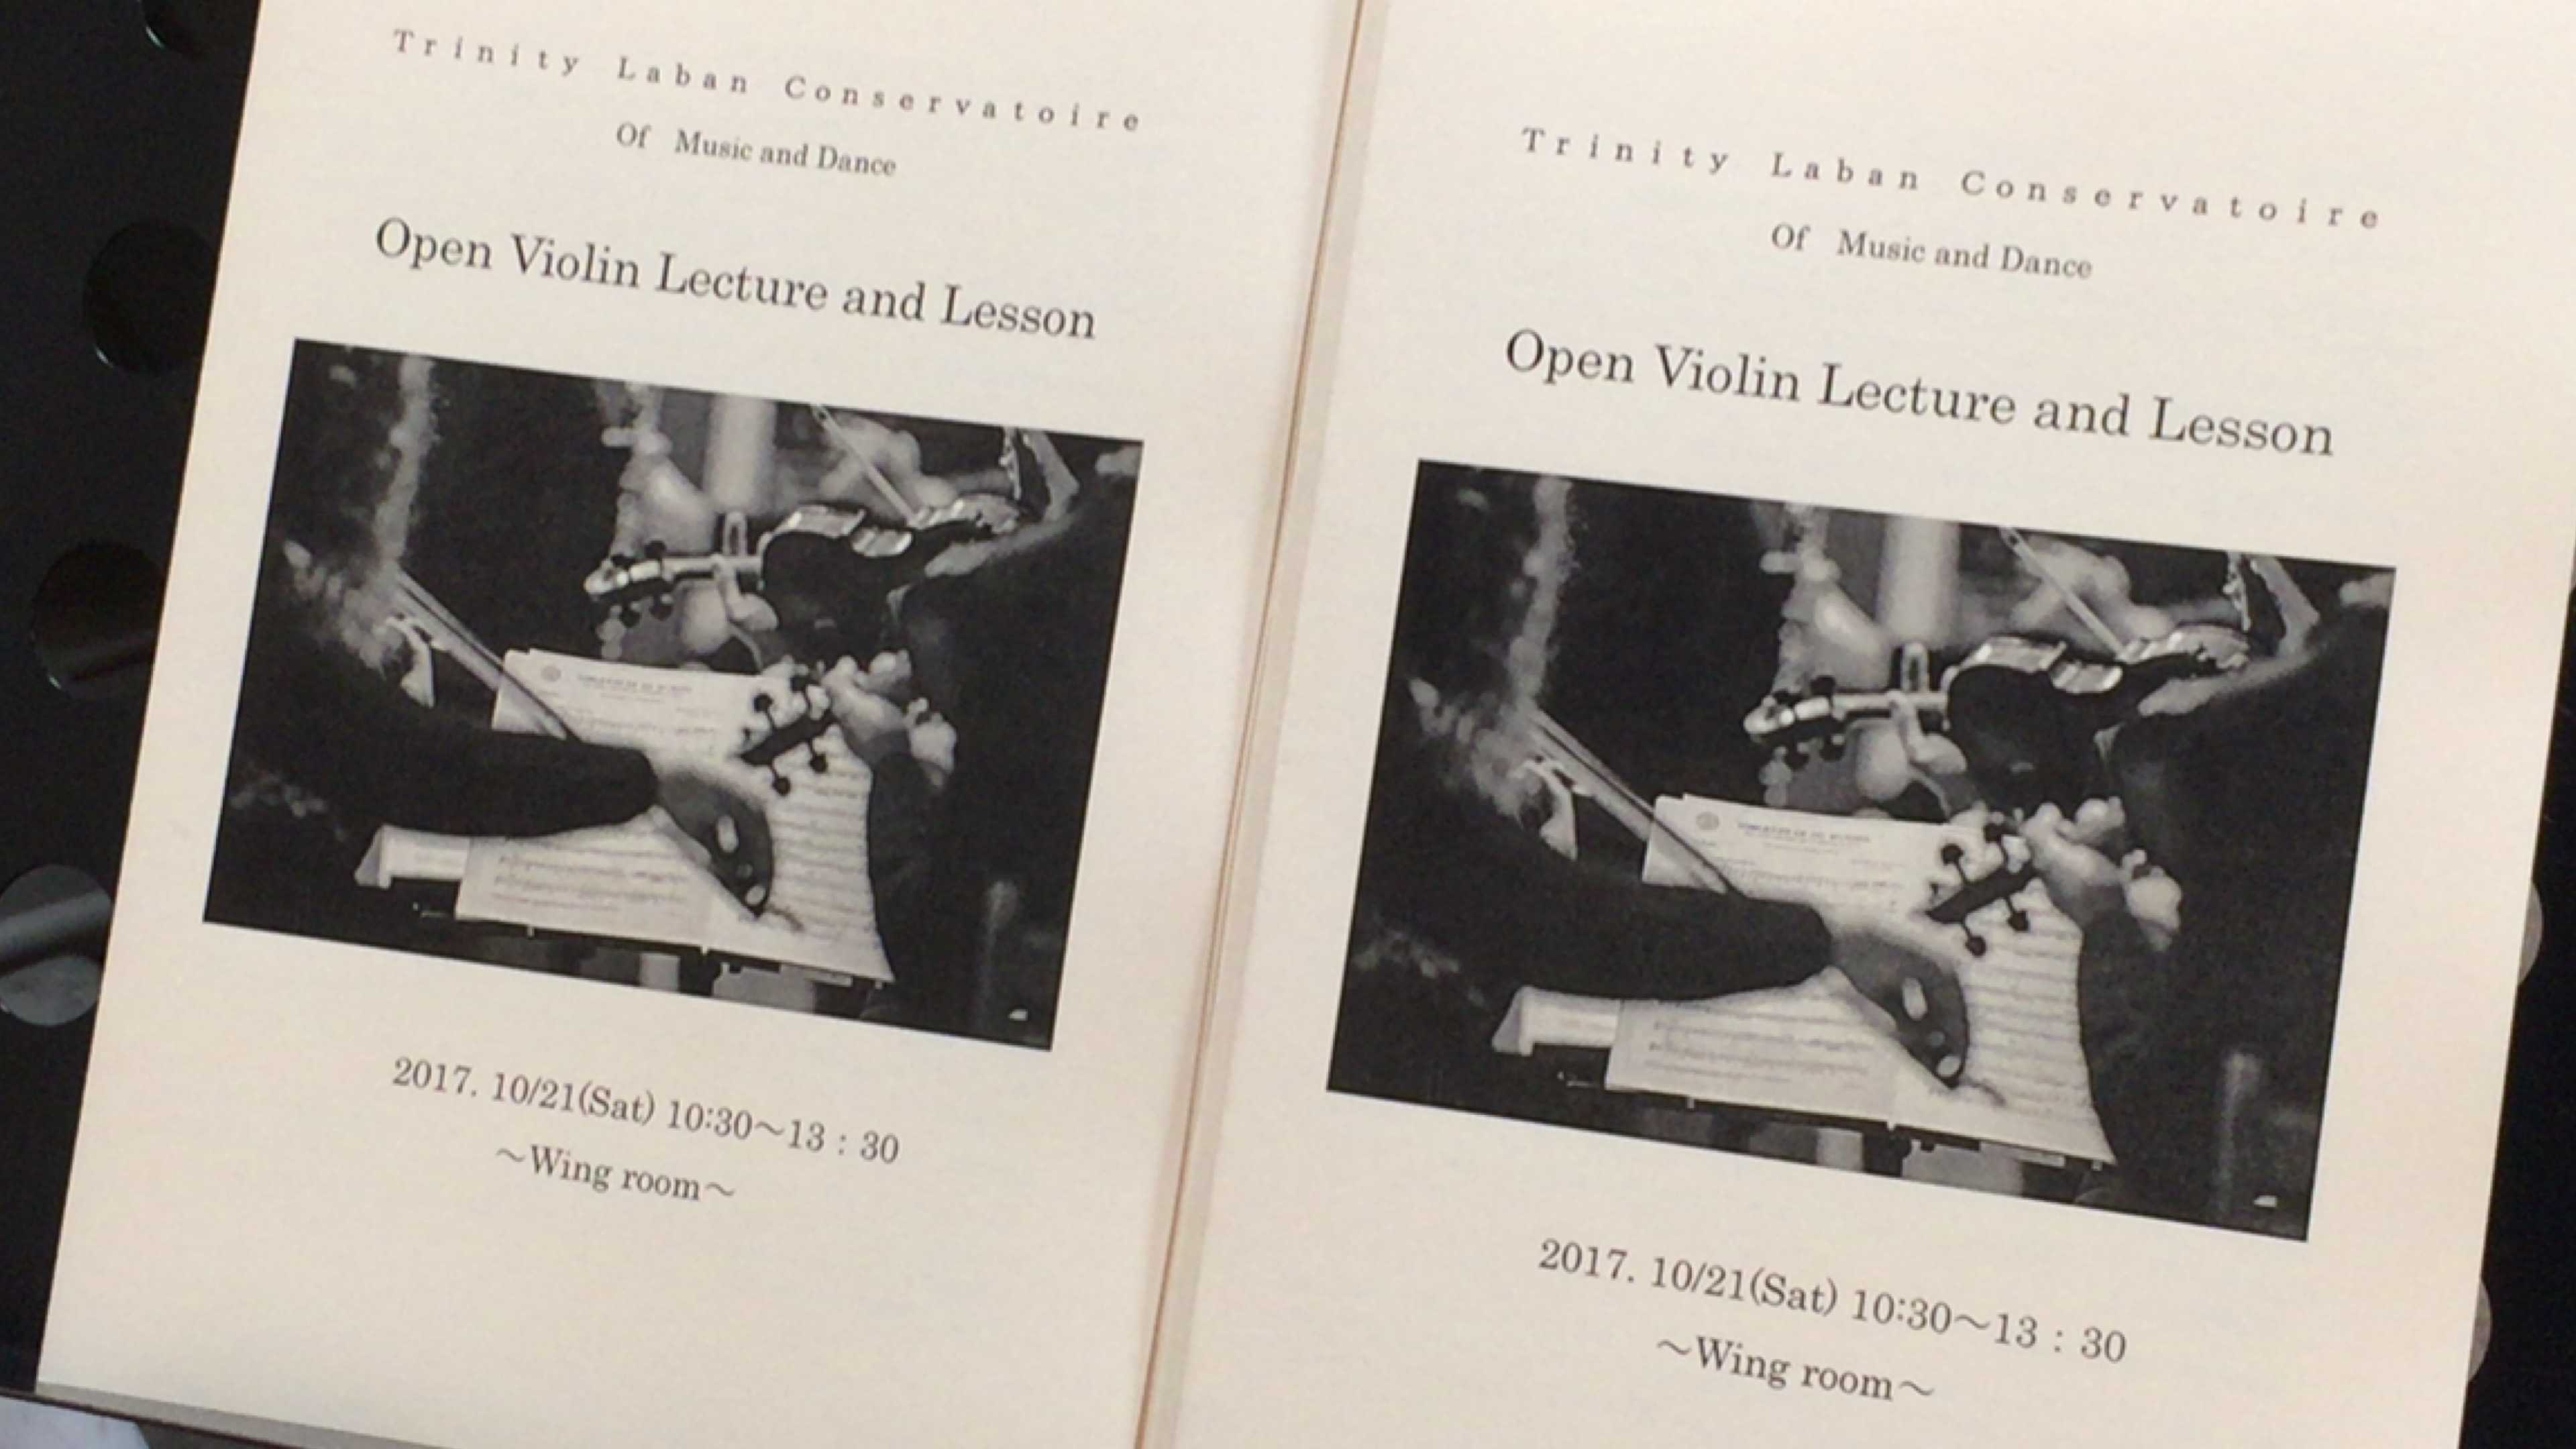 Trinity Laban Conservatoire of Music and Dance、Open Violin Lecture and Lessonと書かれた資料。